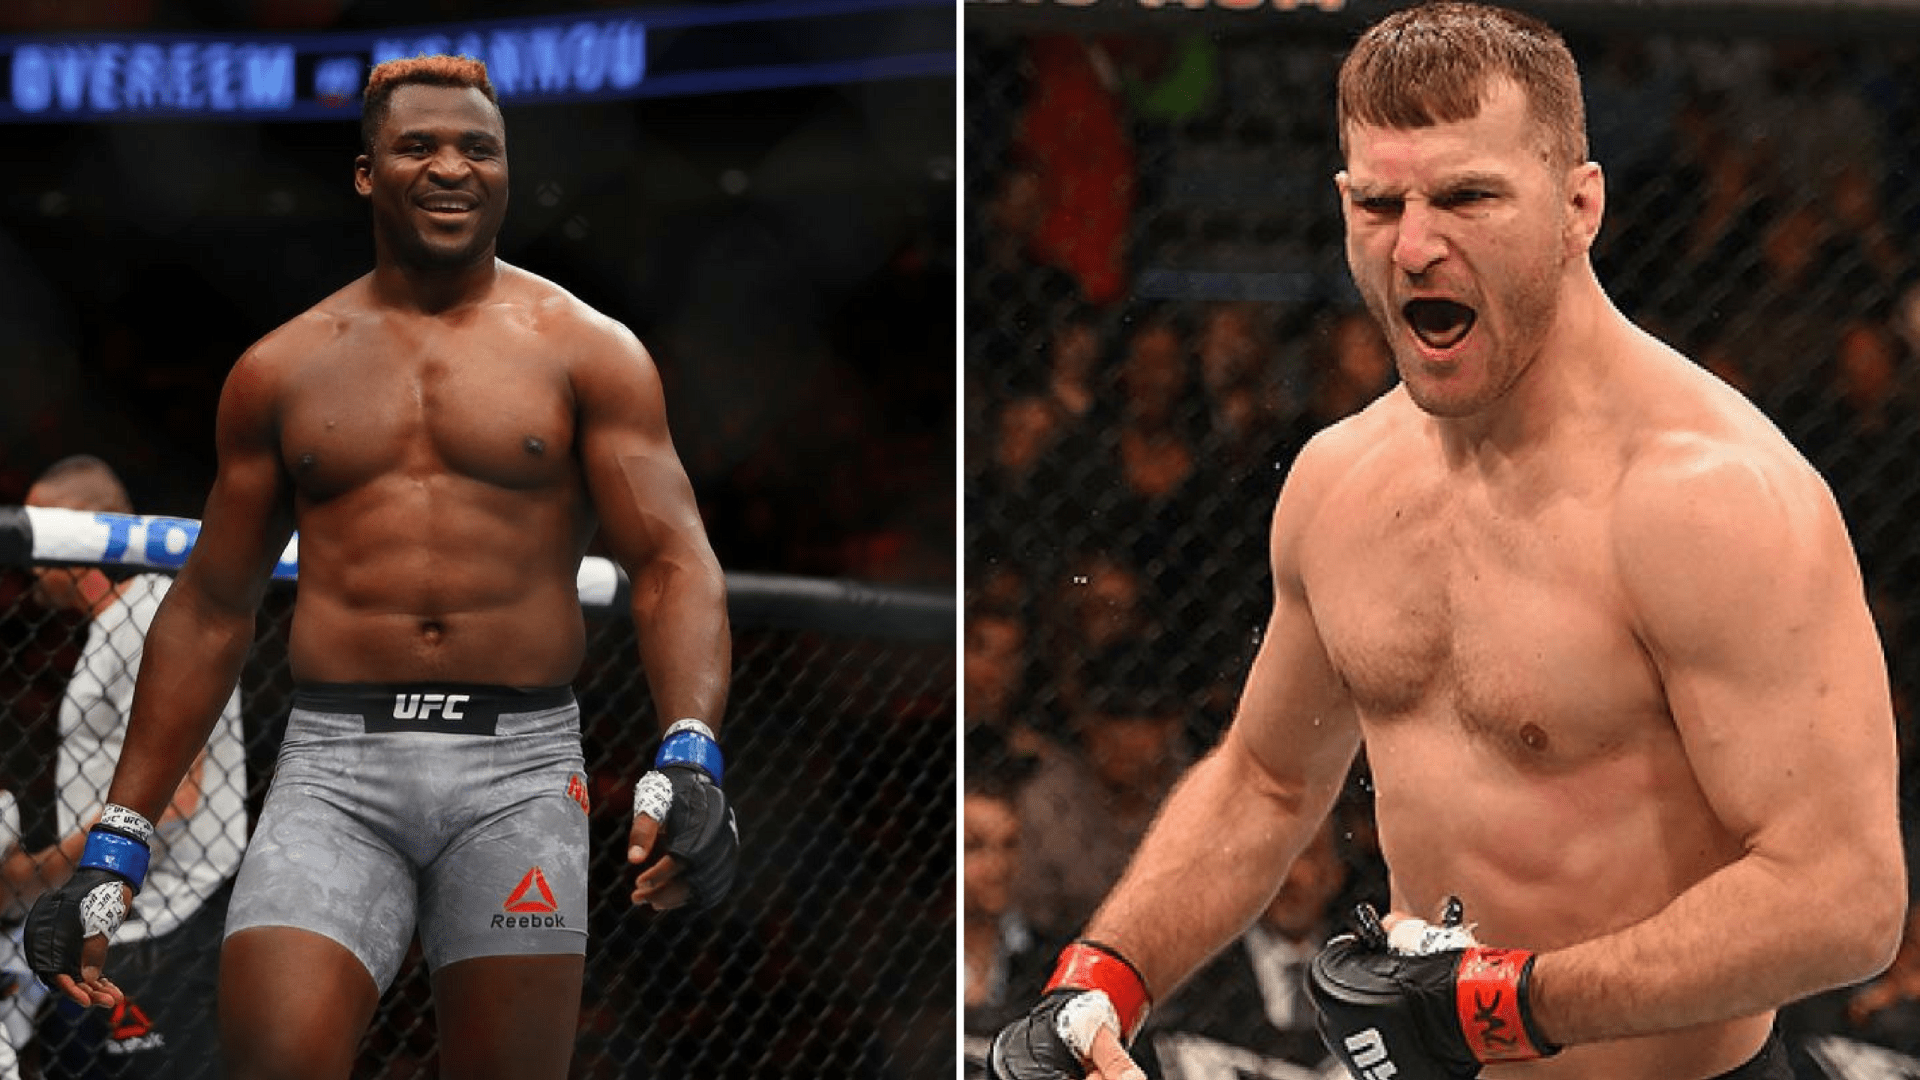 Francis Ngannou fires a barb back at Stipe Miocic -